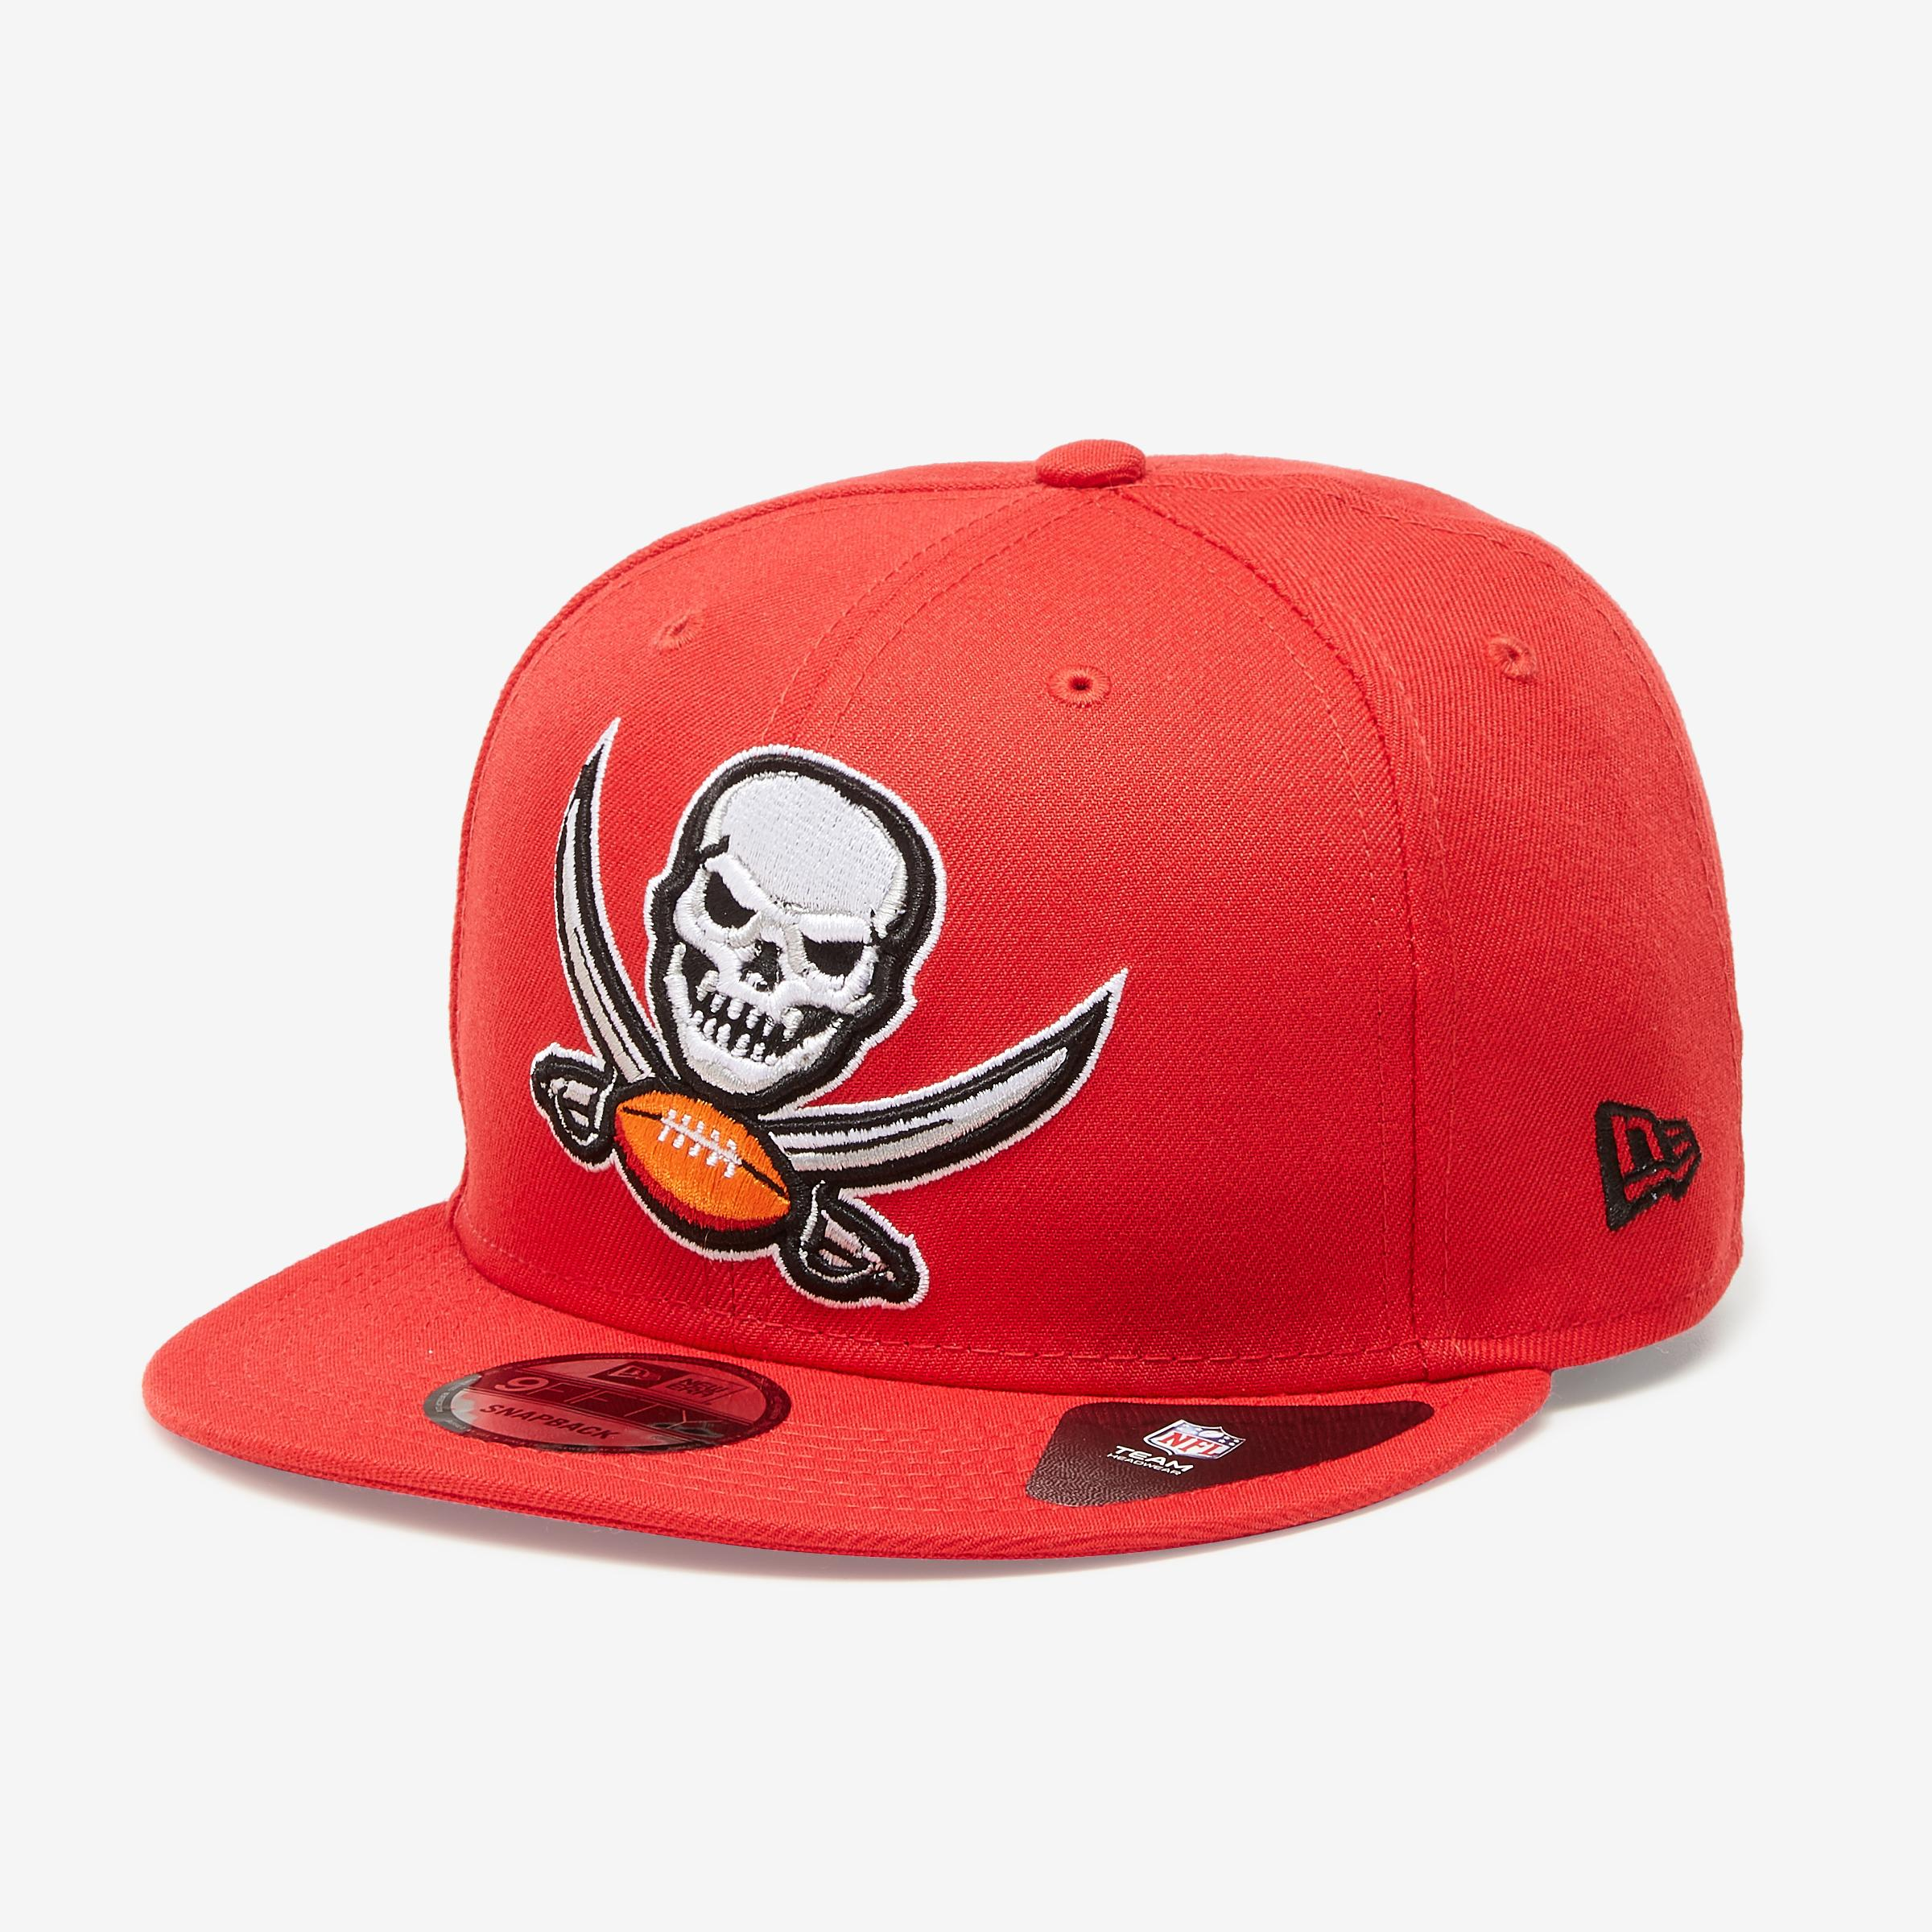 Buccaneers 9fifty Snapback